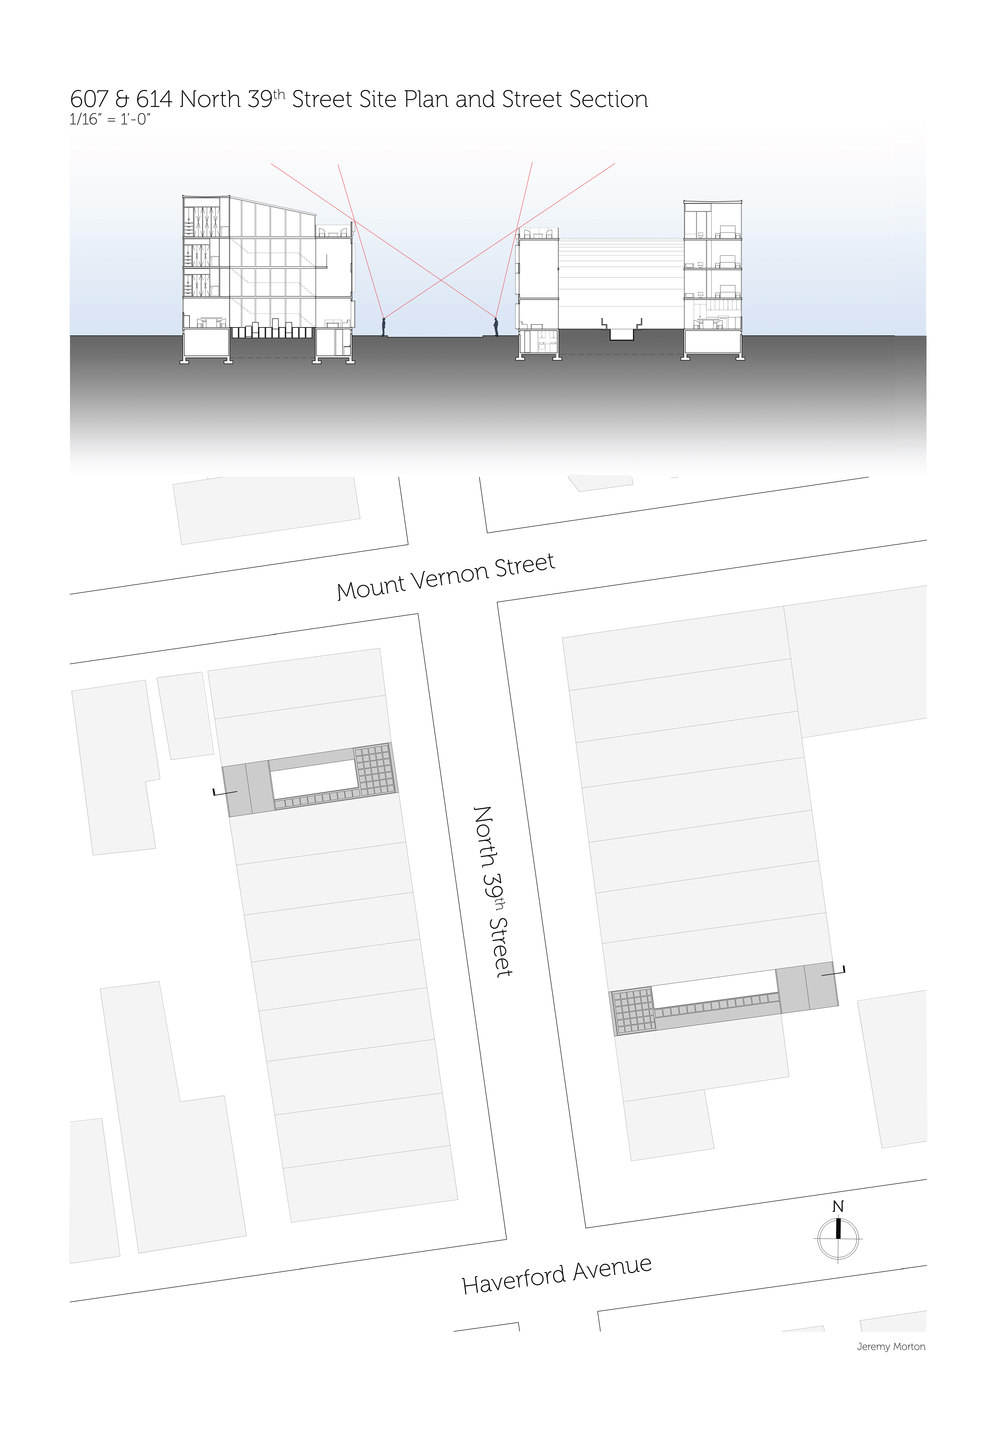 Street Section and Site Map